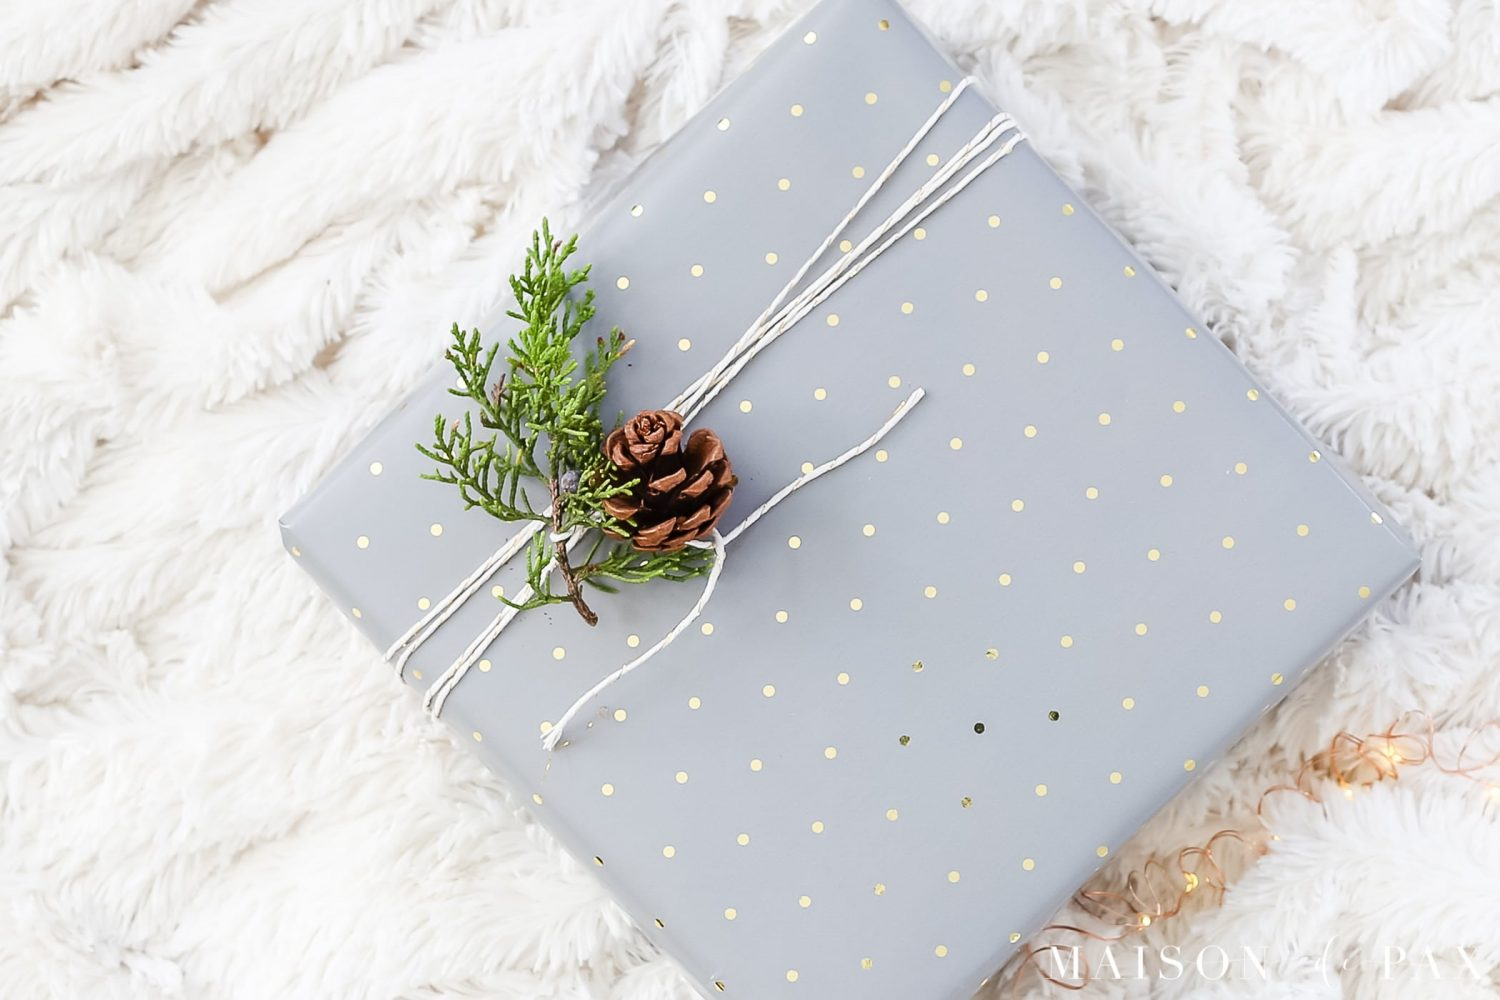 easy gift wrapping ideas: add sprigs of greenery and pinecones to your gifts #christmaspresents #giftwrap